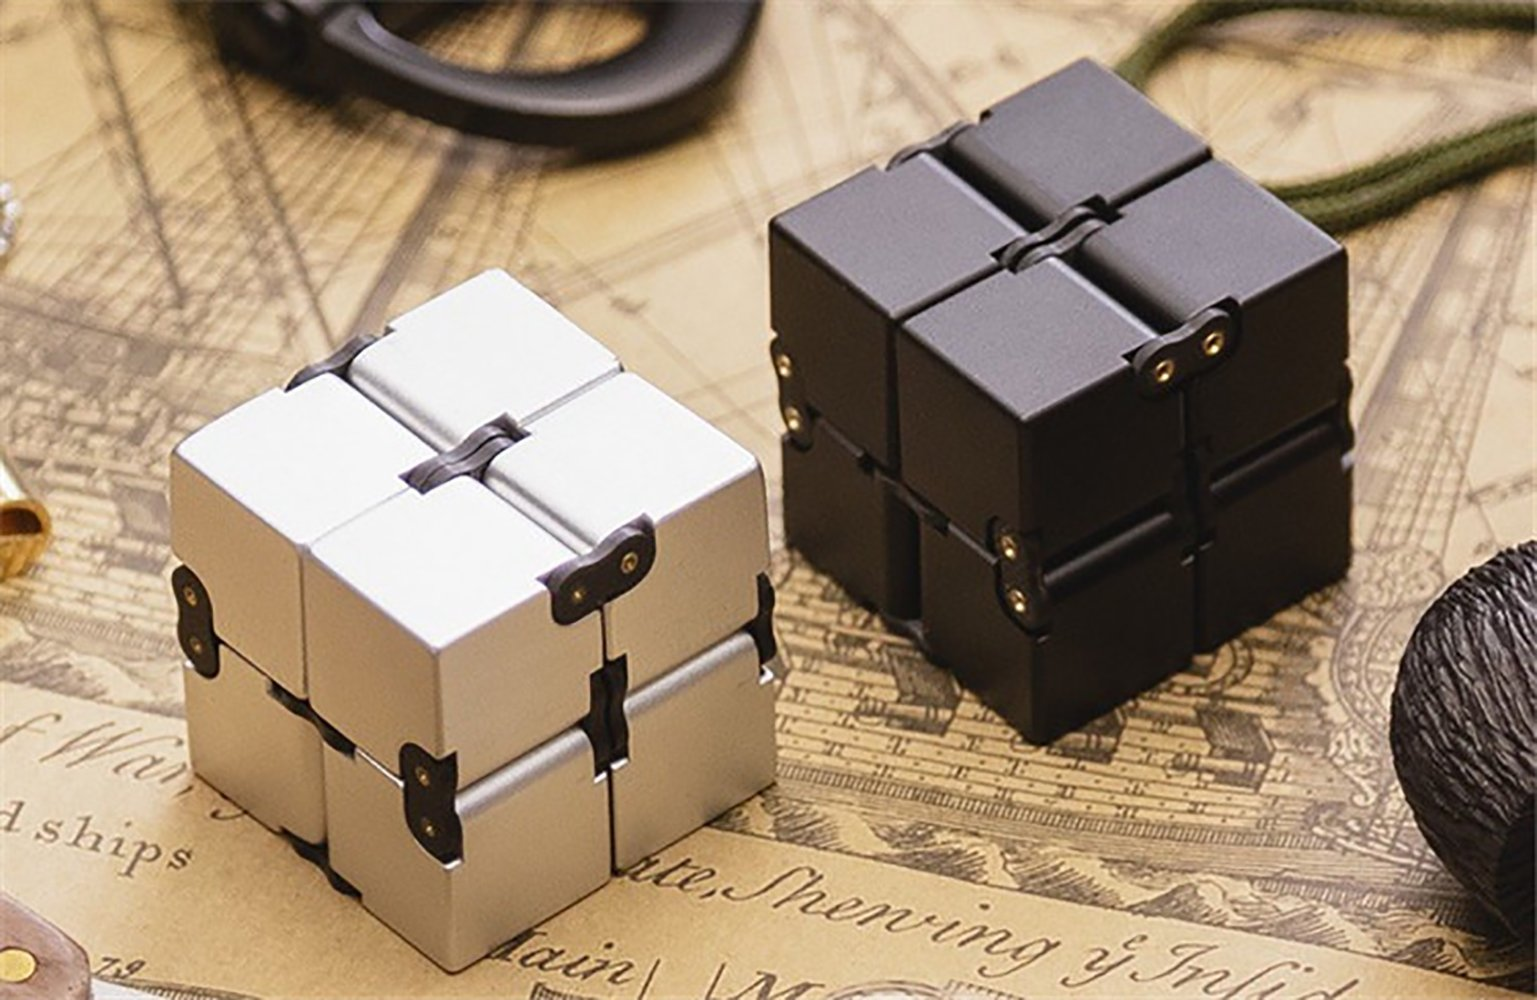 JEYKAY 2018 New Aluminium Alloy Infinity 17 Col Fidget Cube Infinity Cube,Fidget Cube for Stress and Anxiety Relief/ADHD,Ultra Durable (Sliver New) by JEYKAY (Image #3)